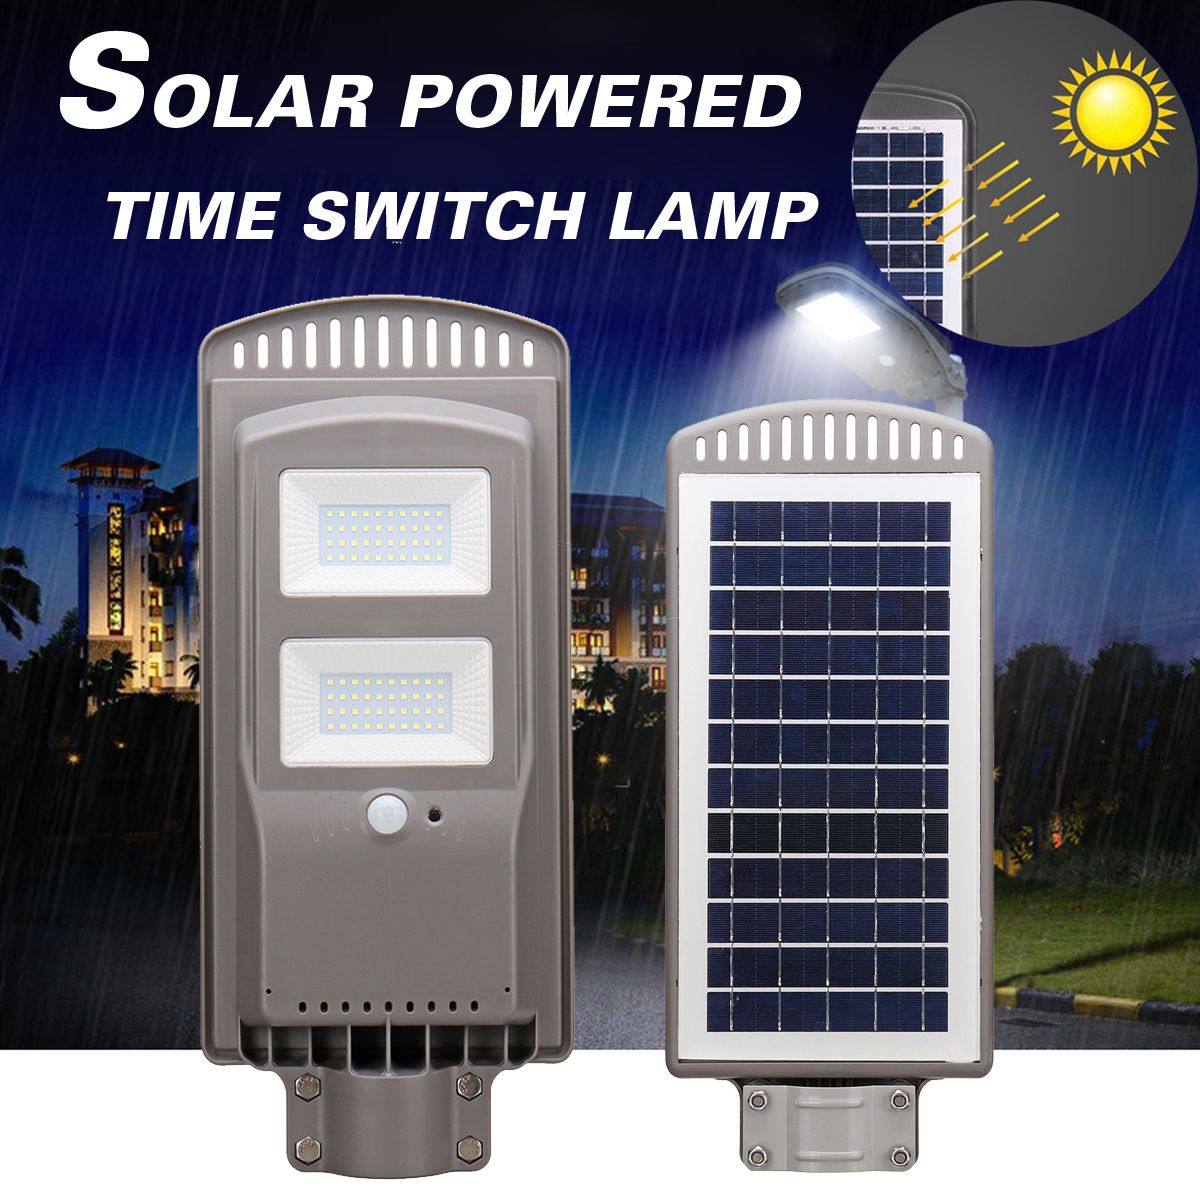 40W Solar Powered Panel LED Solar Street Light All-in-1 Time Switch Waterproof IP67 Wall Path Lighting Lamp for Outdoor Garden high lumen 60w all in one solar street light south africa for commerical lighting residential lighting